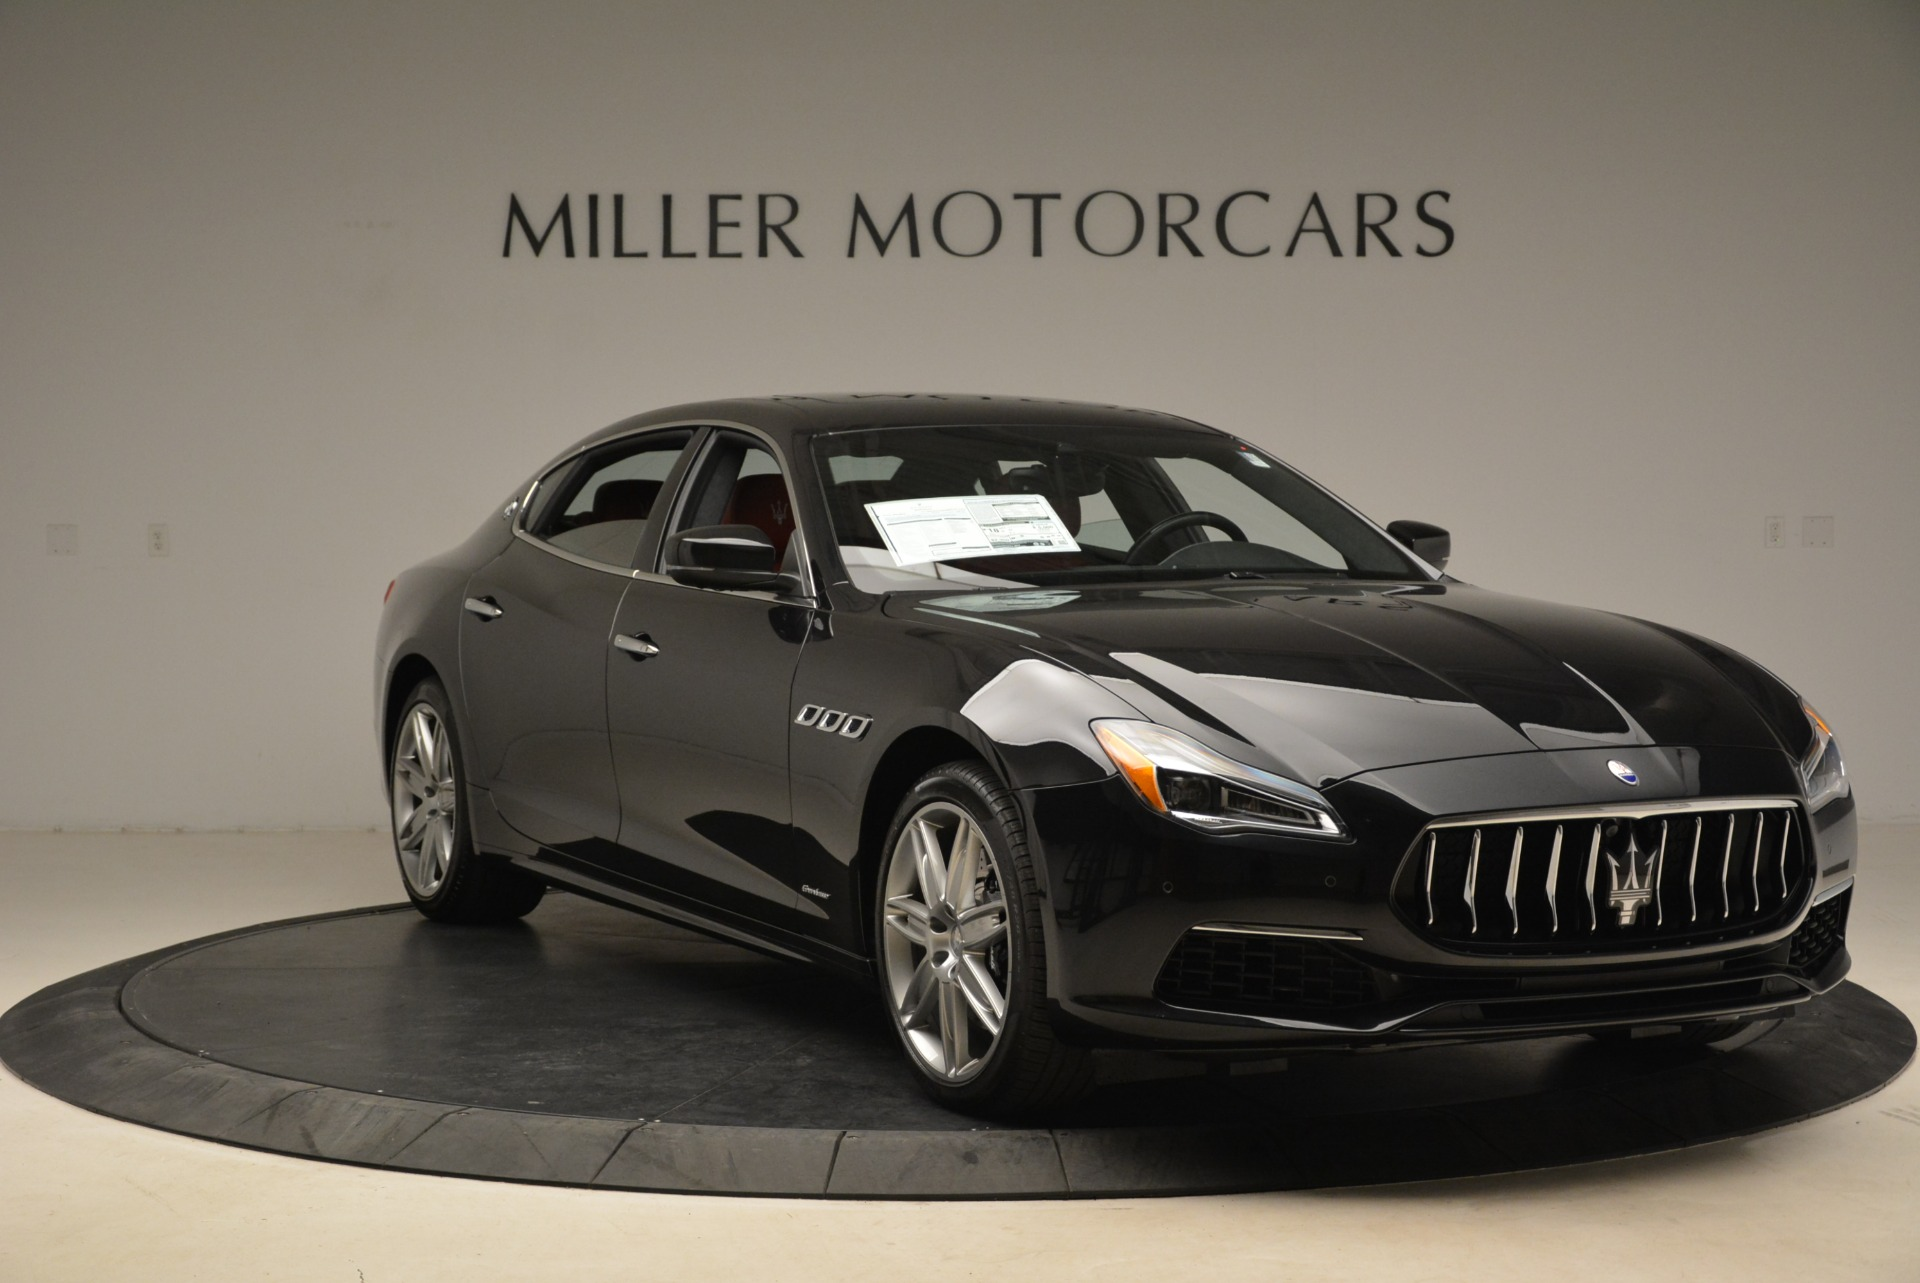 New 2018 Maserati Quattroporte S Q4 GranLusso For Sale In Greenwich, CT. Alfa Romeo of Greenwich, M2164 2296_p11